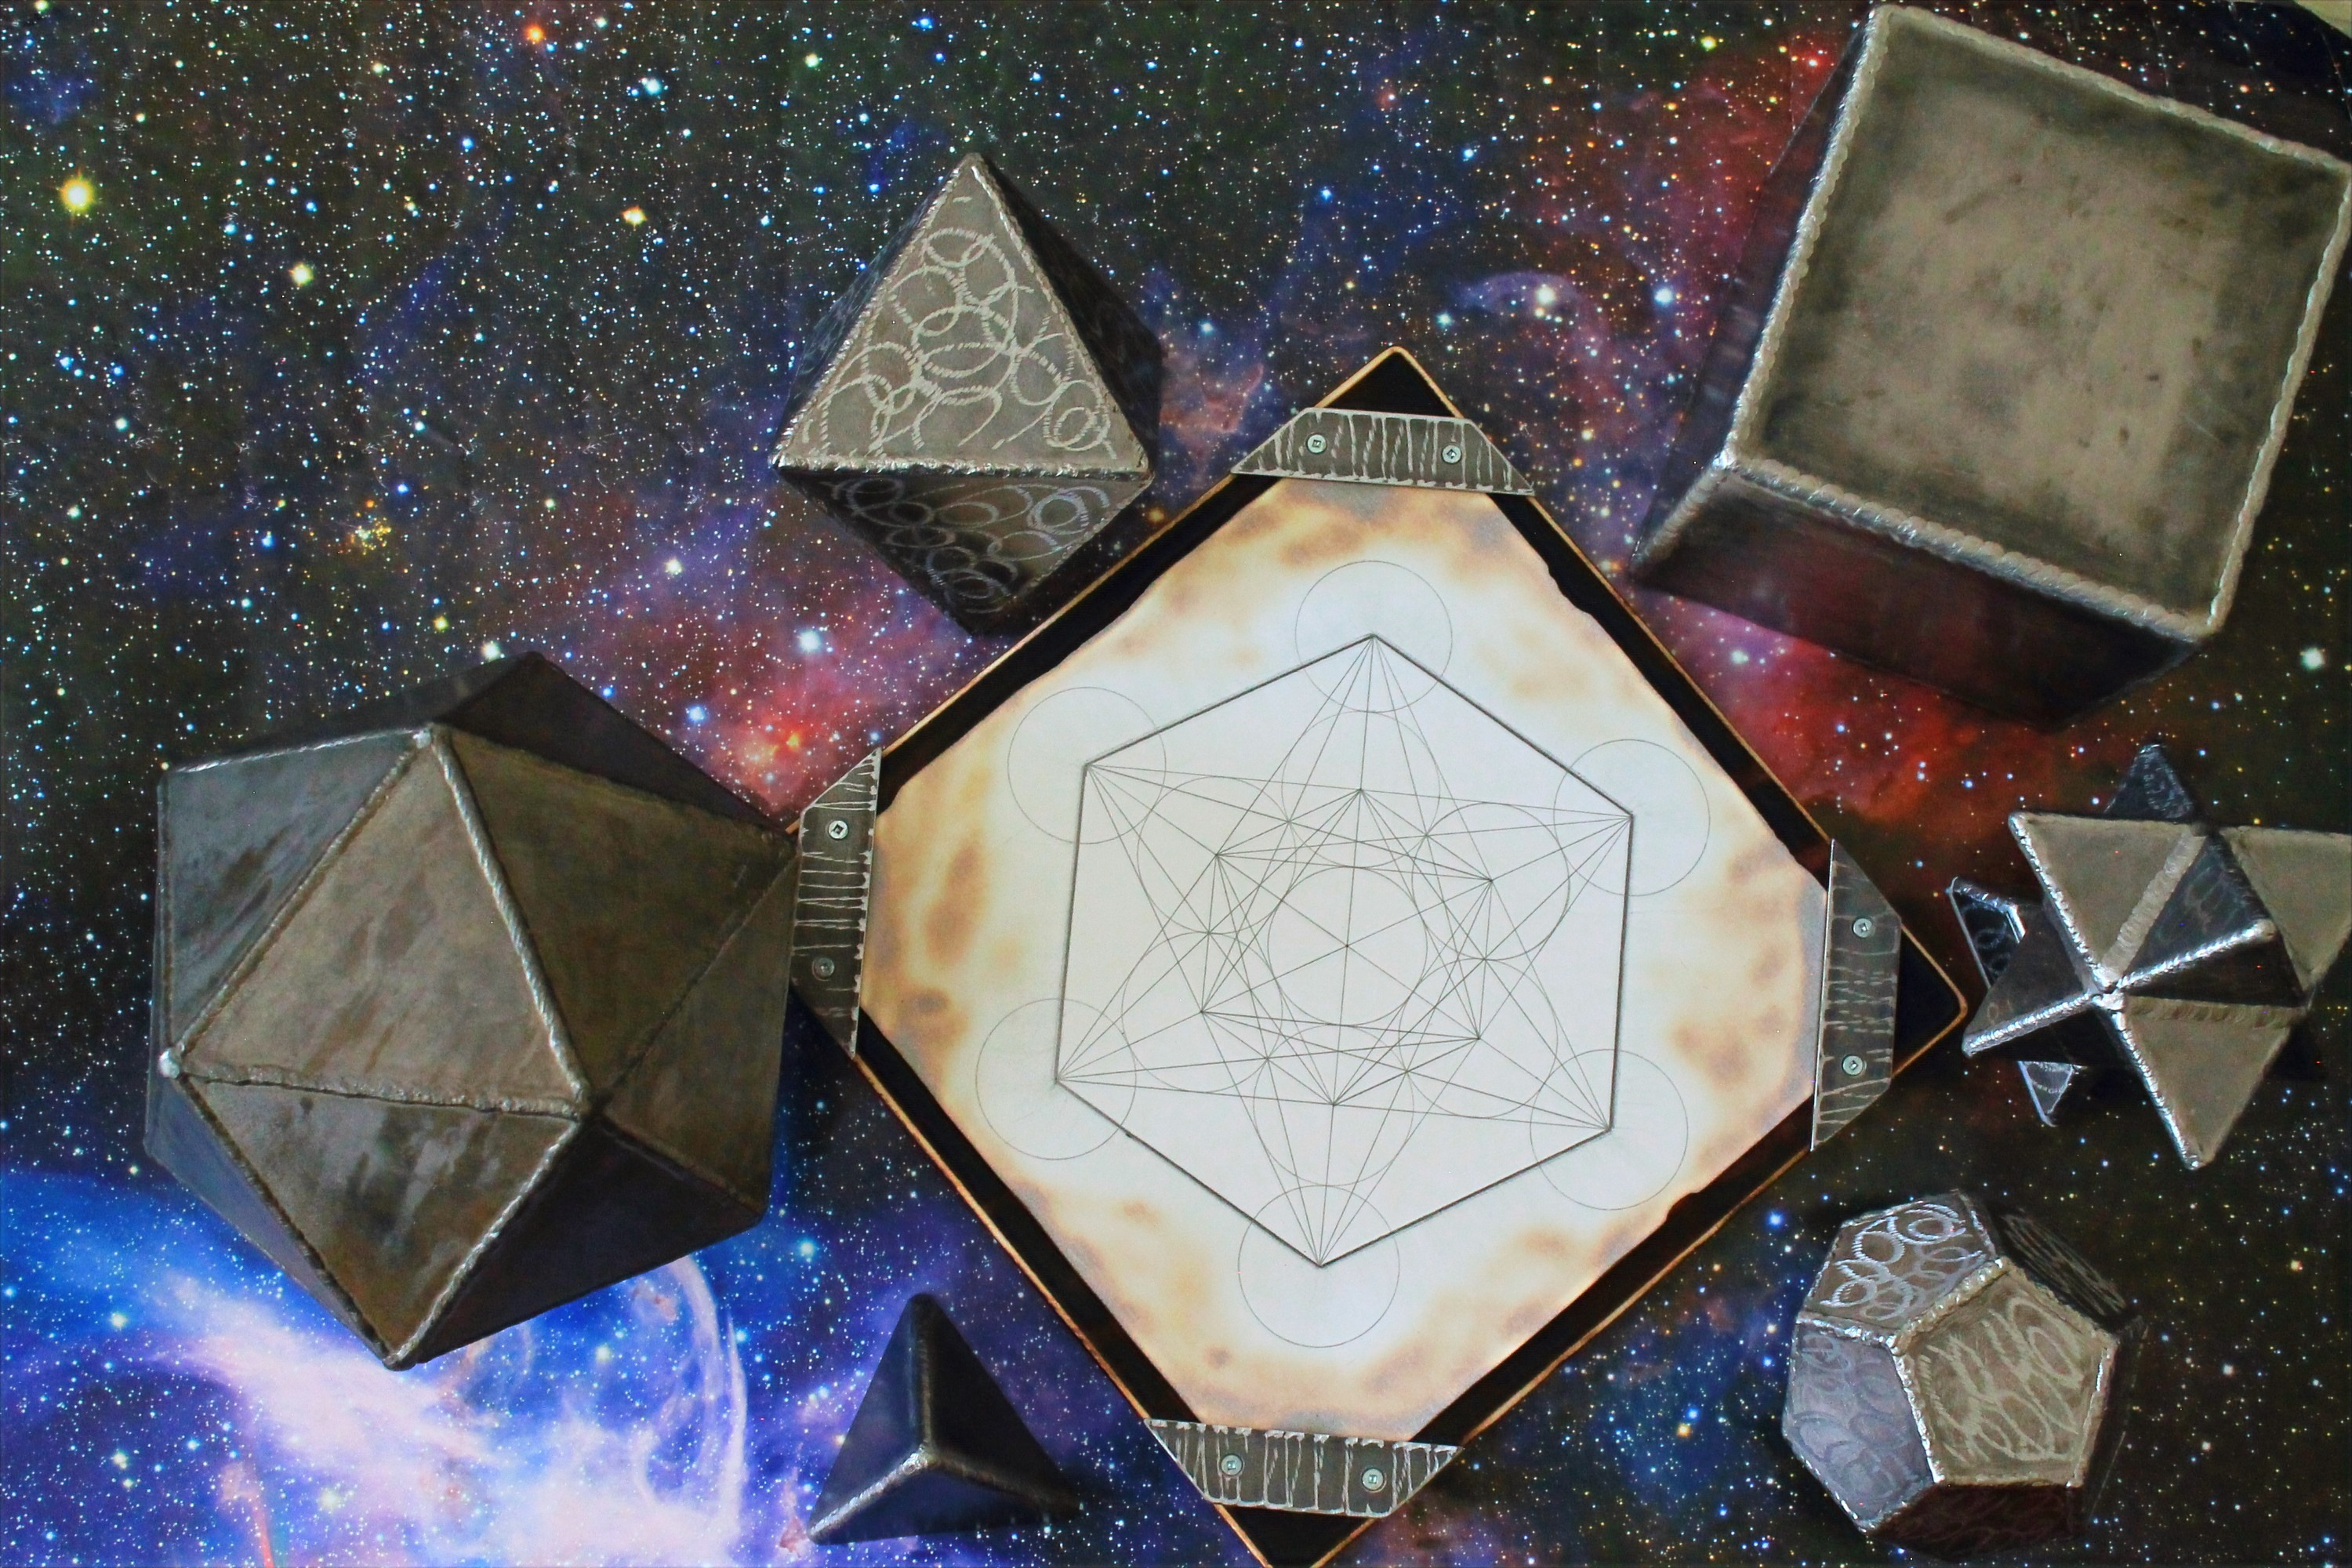 Bob;s complete collection of hand made sacred geometry metal decor, with a hand drawn metatron's cube.